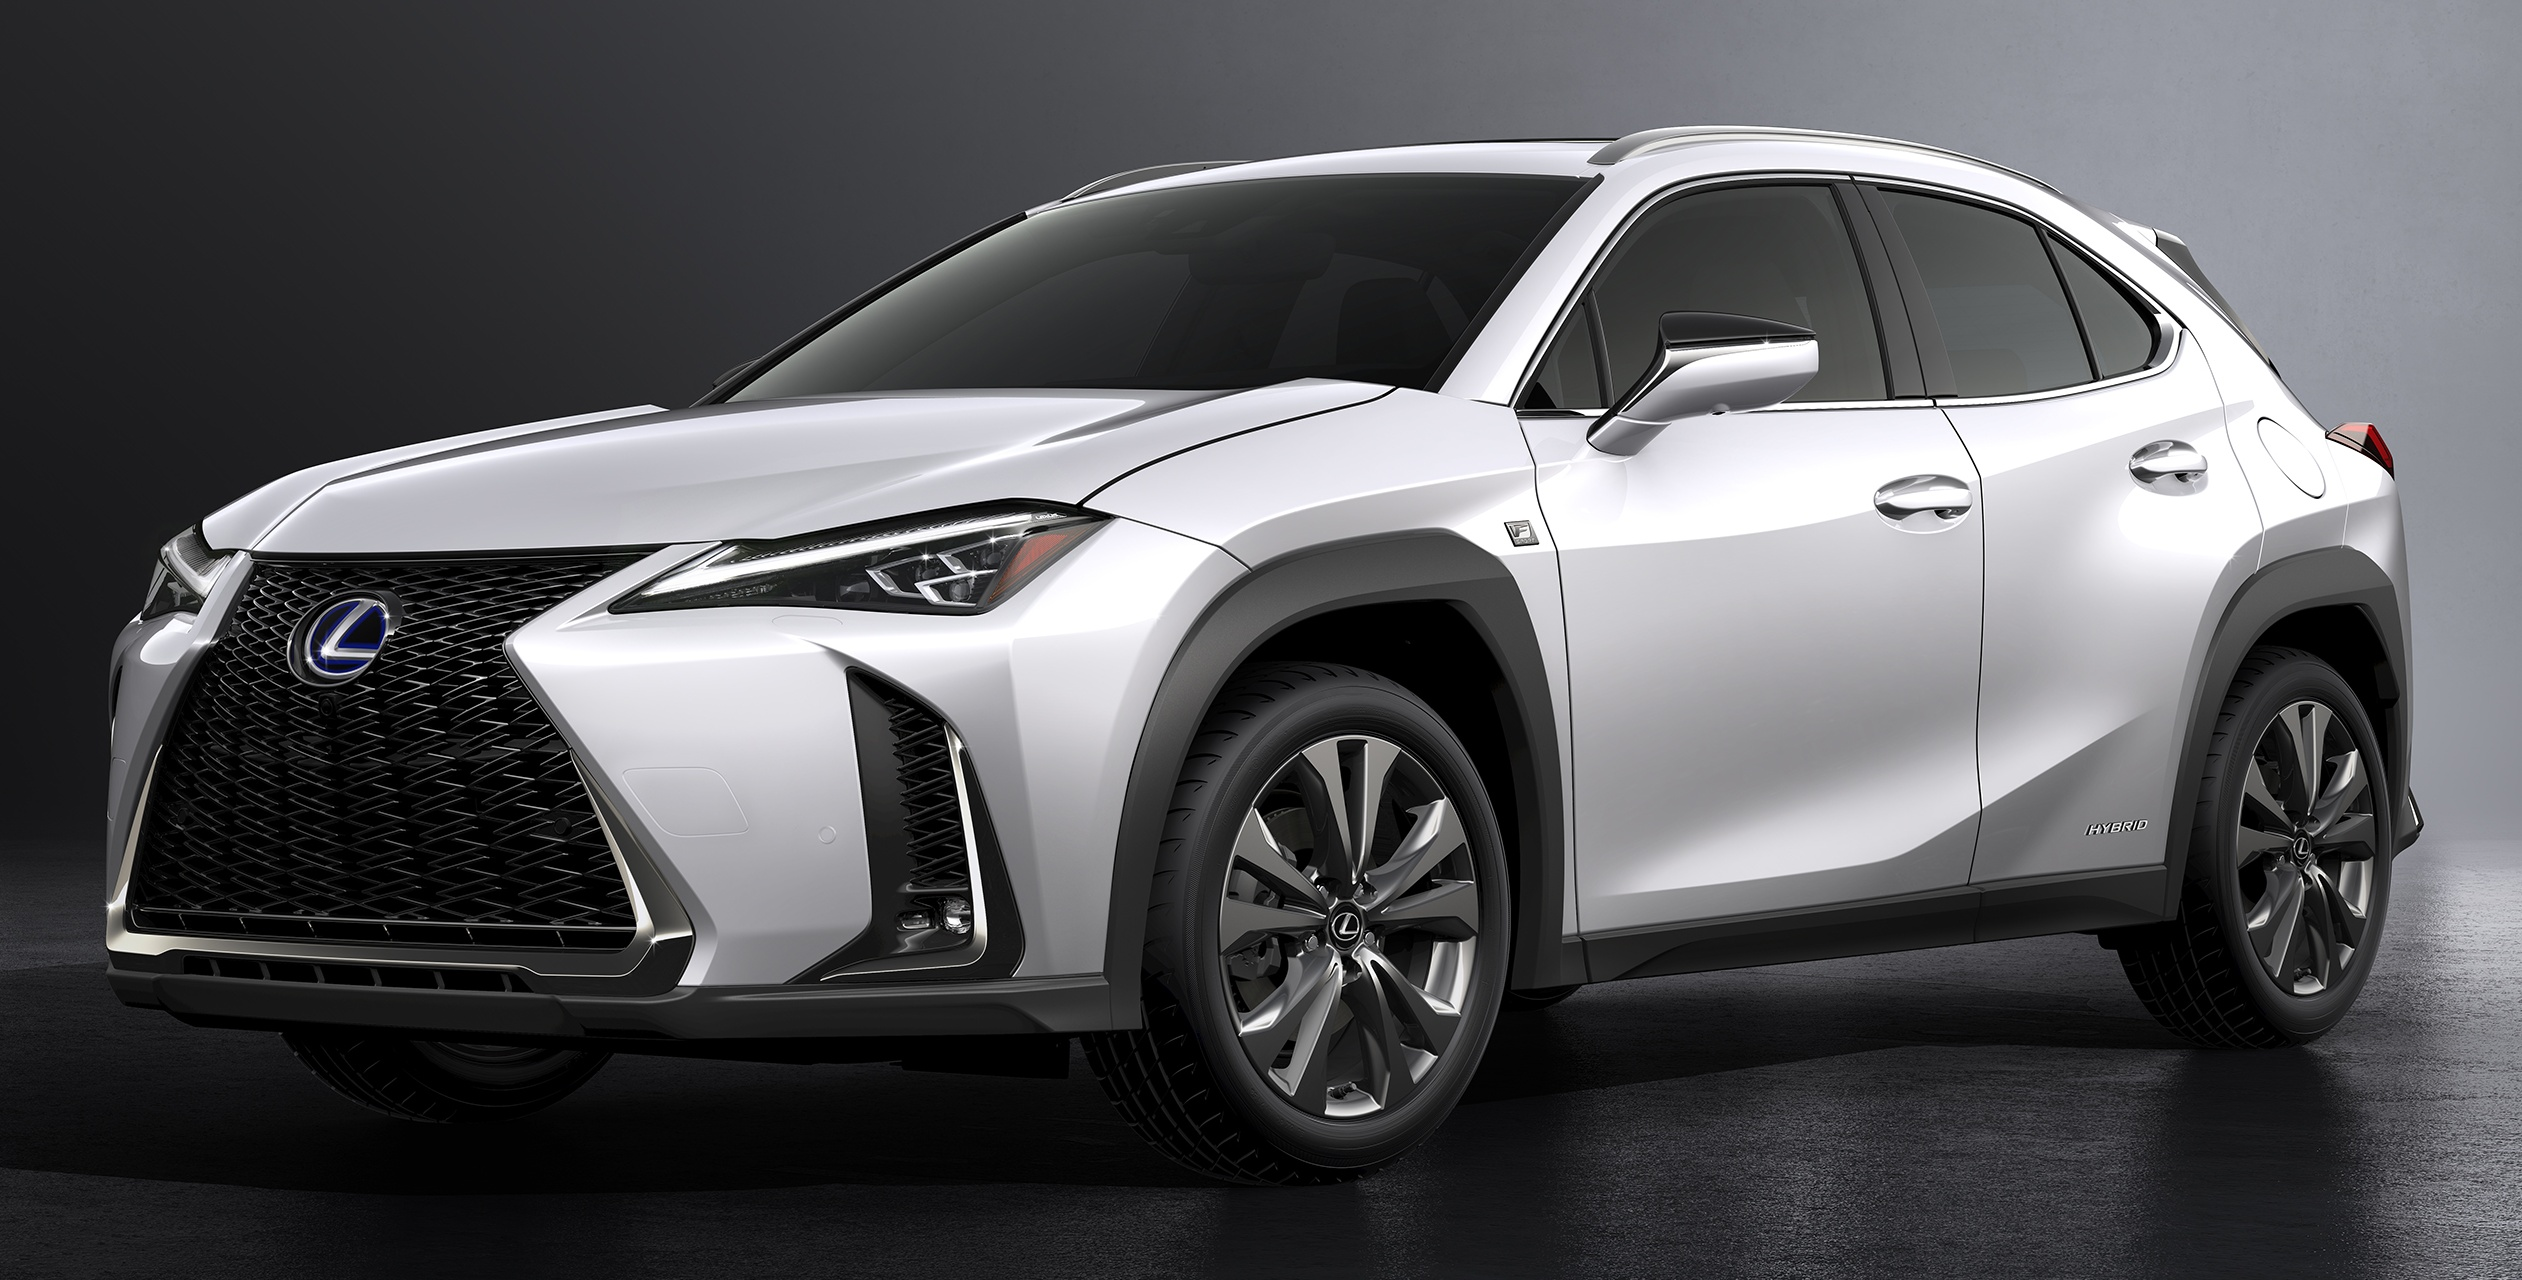 lexus ux crossover kompak baru yang terletak bawah nx pilihan dua enjin 2 0 na 168 hp atau. Black Bedroom Furniture Sets. Home Design Ideas